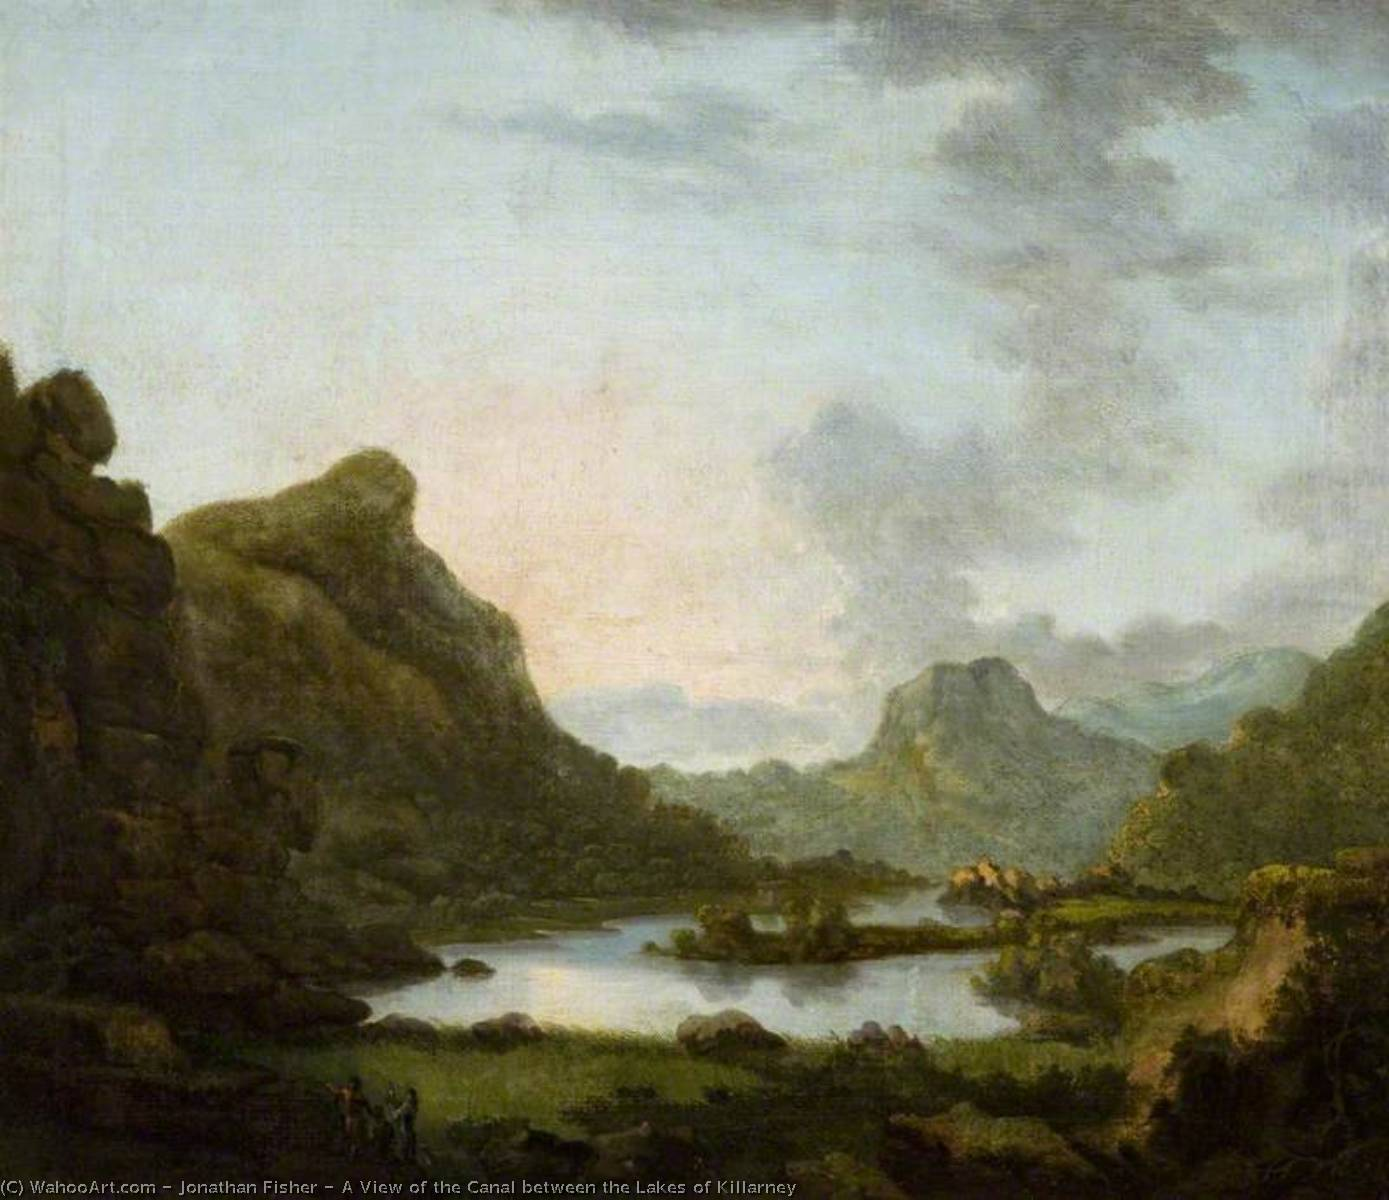 A View of the Canal between the Lakes of Killarney, 1770 by Jonathan Fisher | Oil Painting | ArtsDot.com